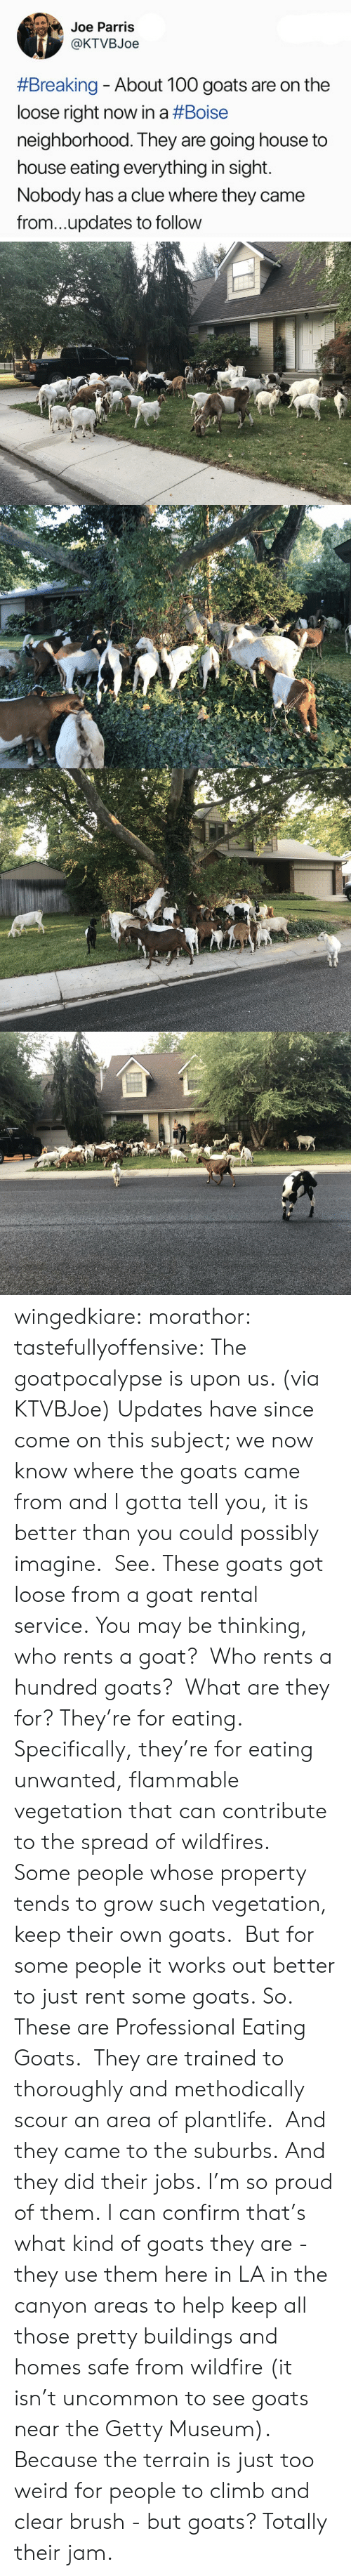 gotta tell you: Joe Parris  @KTVBJoe  #Breaking-About 100 goats are on the  loose right now in a #Boise  neighborhood. They are going house to  house eating everything in sight.  Nobody has a clue where they came  from...updates to follow wingedkiare:  morathor: tastefullyoffensive: The goatpocalypse is upon us. (via KTVBJoe) Updates have since come on this subject; we now know where the goats came from and I gotta tell you, it is better than you could possibly imagine. See. These goats got loose from a goat rental service. You may be thinking, who rents a goat? Who rents a hundred goats? What are they for? They're for eating. Specifically, they're for eating unwanted, flammable vegetation that can contribute to the spread of wildfires. Some people whose property tends to grow such vegetation, keep their own goats. But for some people it works out better to just rent some goats. So. These are Professional Eating Goats. They are trained to thoroughly and methodically scour an area of plantlife. And they came to the suburbs. And they did their jobs. I'm so proud of them.  I can confirm that's what kind of goats they are - they use them here in LA in the canyon areas to help keep all those pretty buildings and homes safe from wildfire (it isn't uncommon to see goats near the Getty Museum).  Because the terrain is just too weird for people to climb and clear brush - but goats?  Totally their jam.